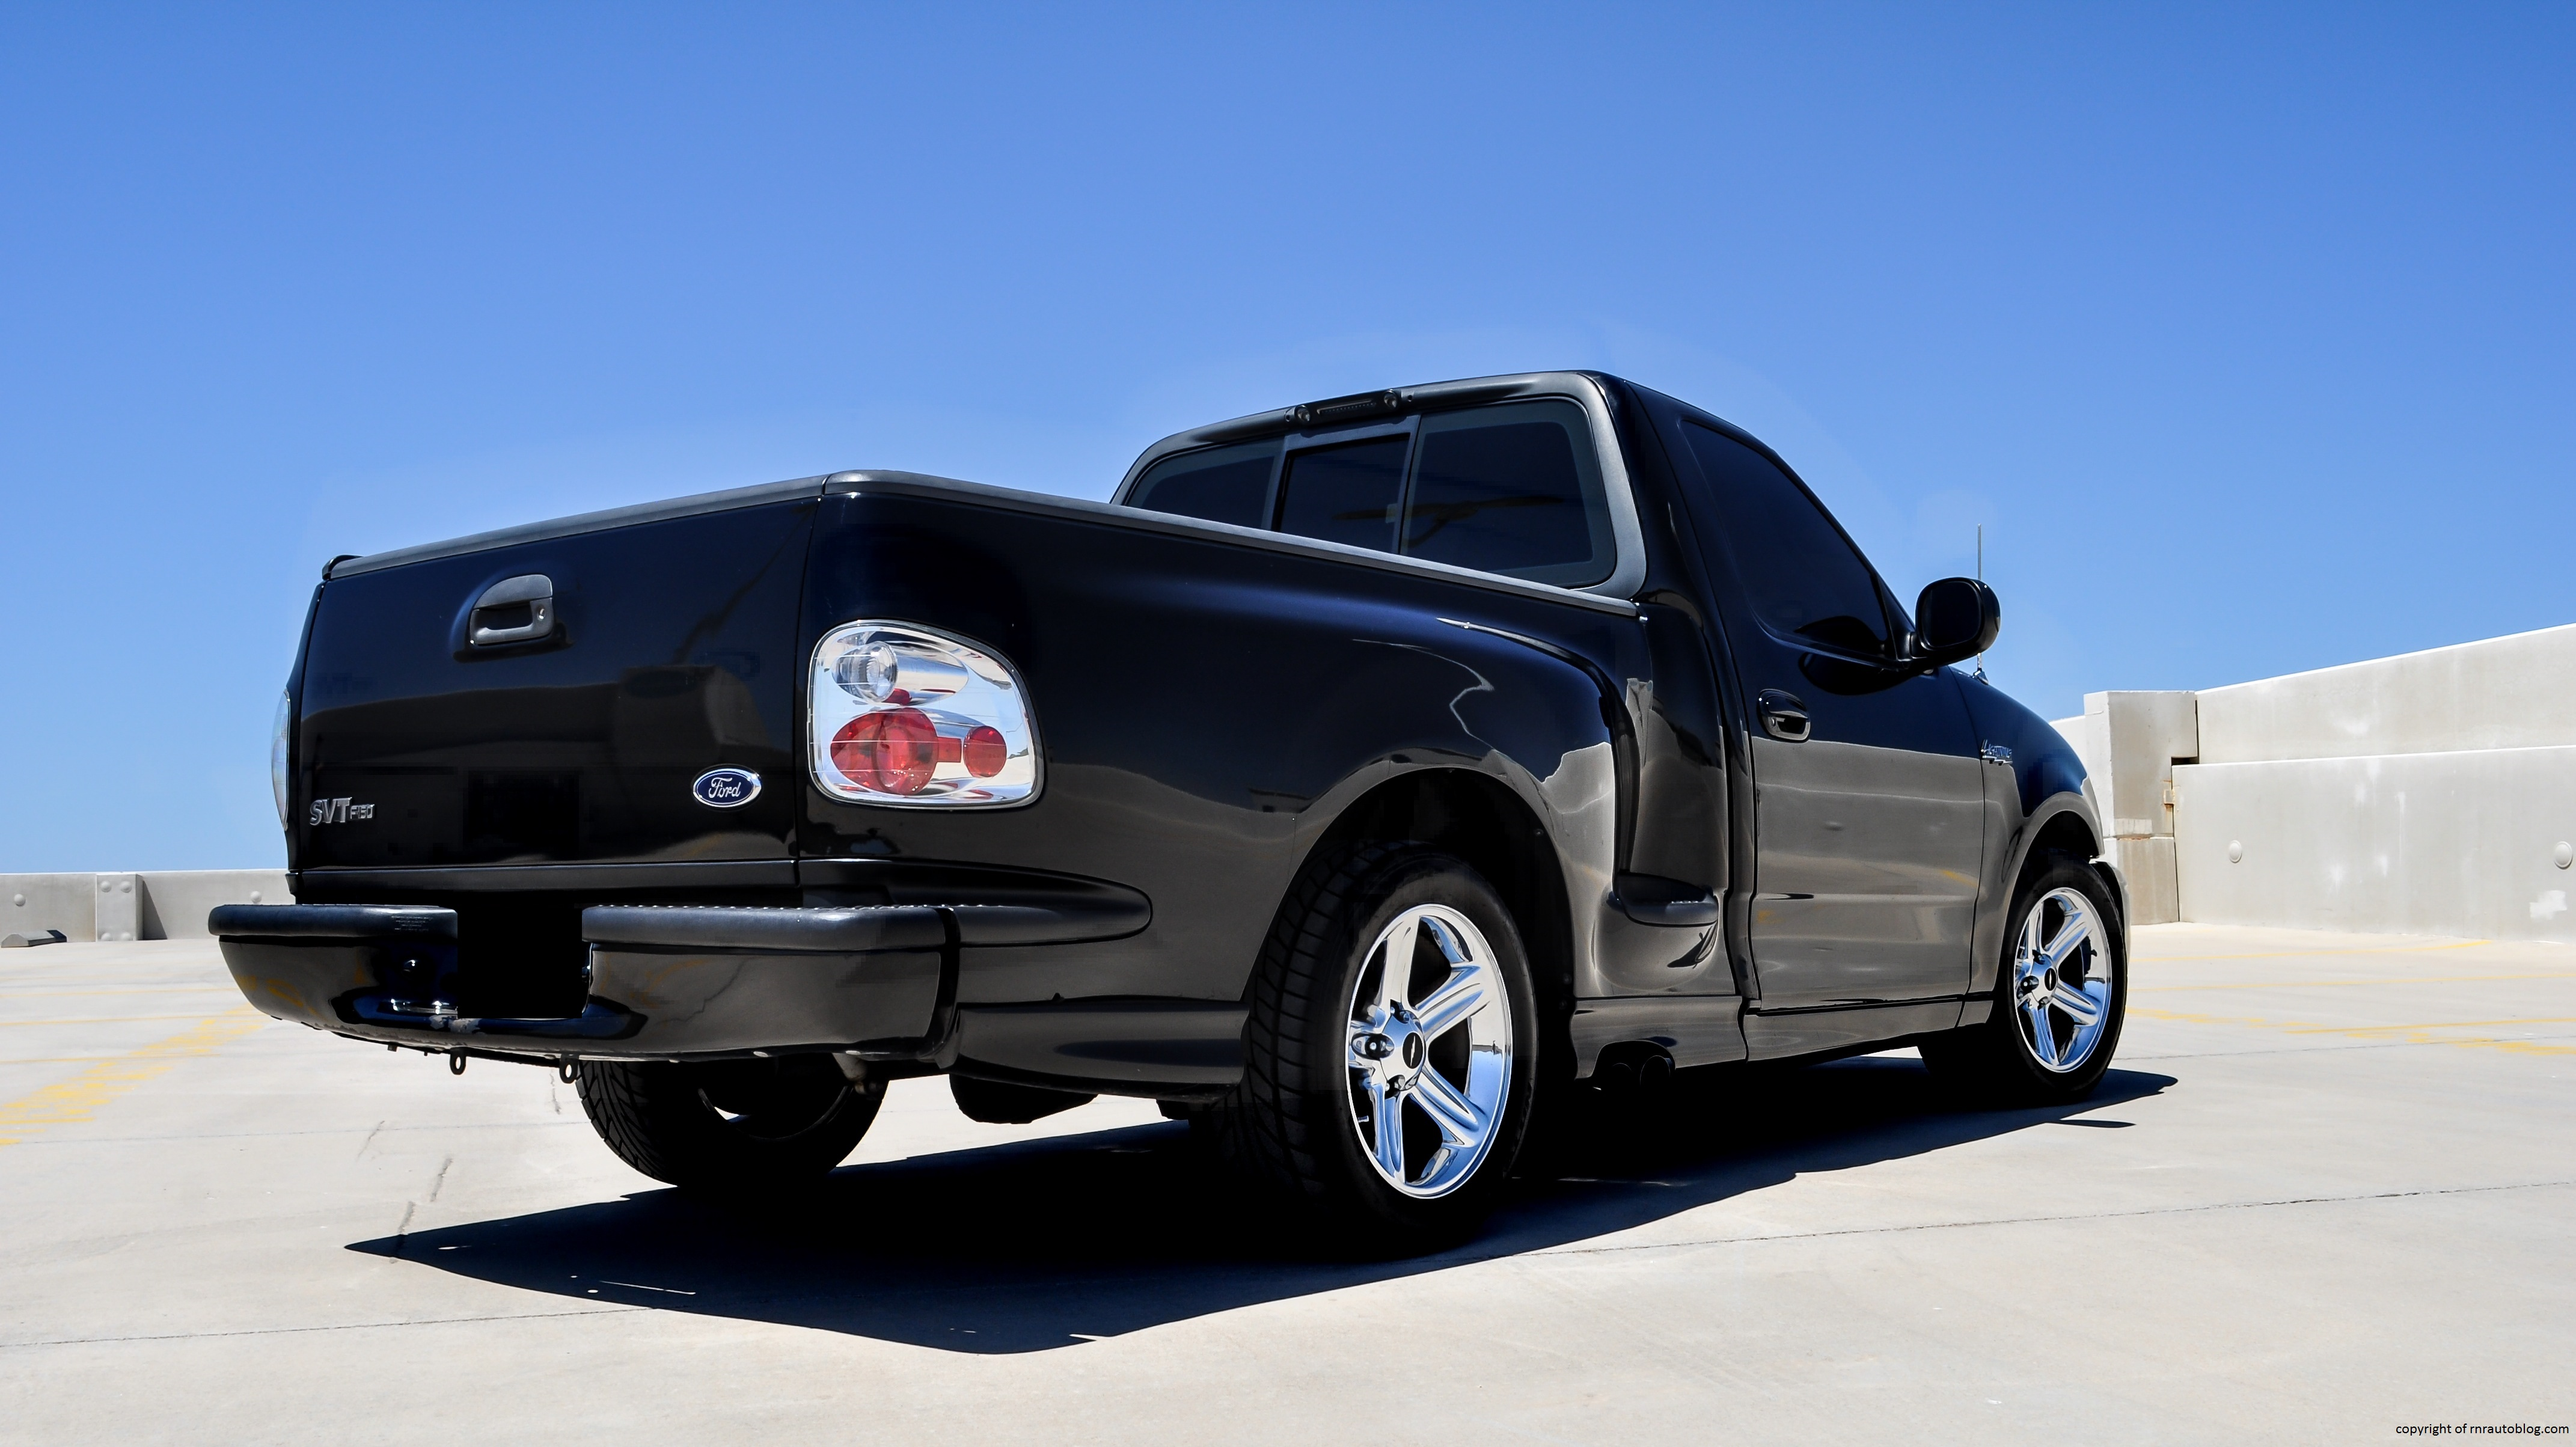 Worlds Fastest Pickup Truck World's fastest production